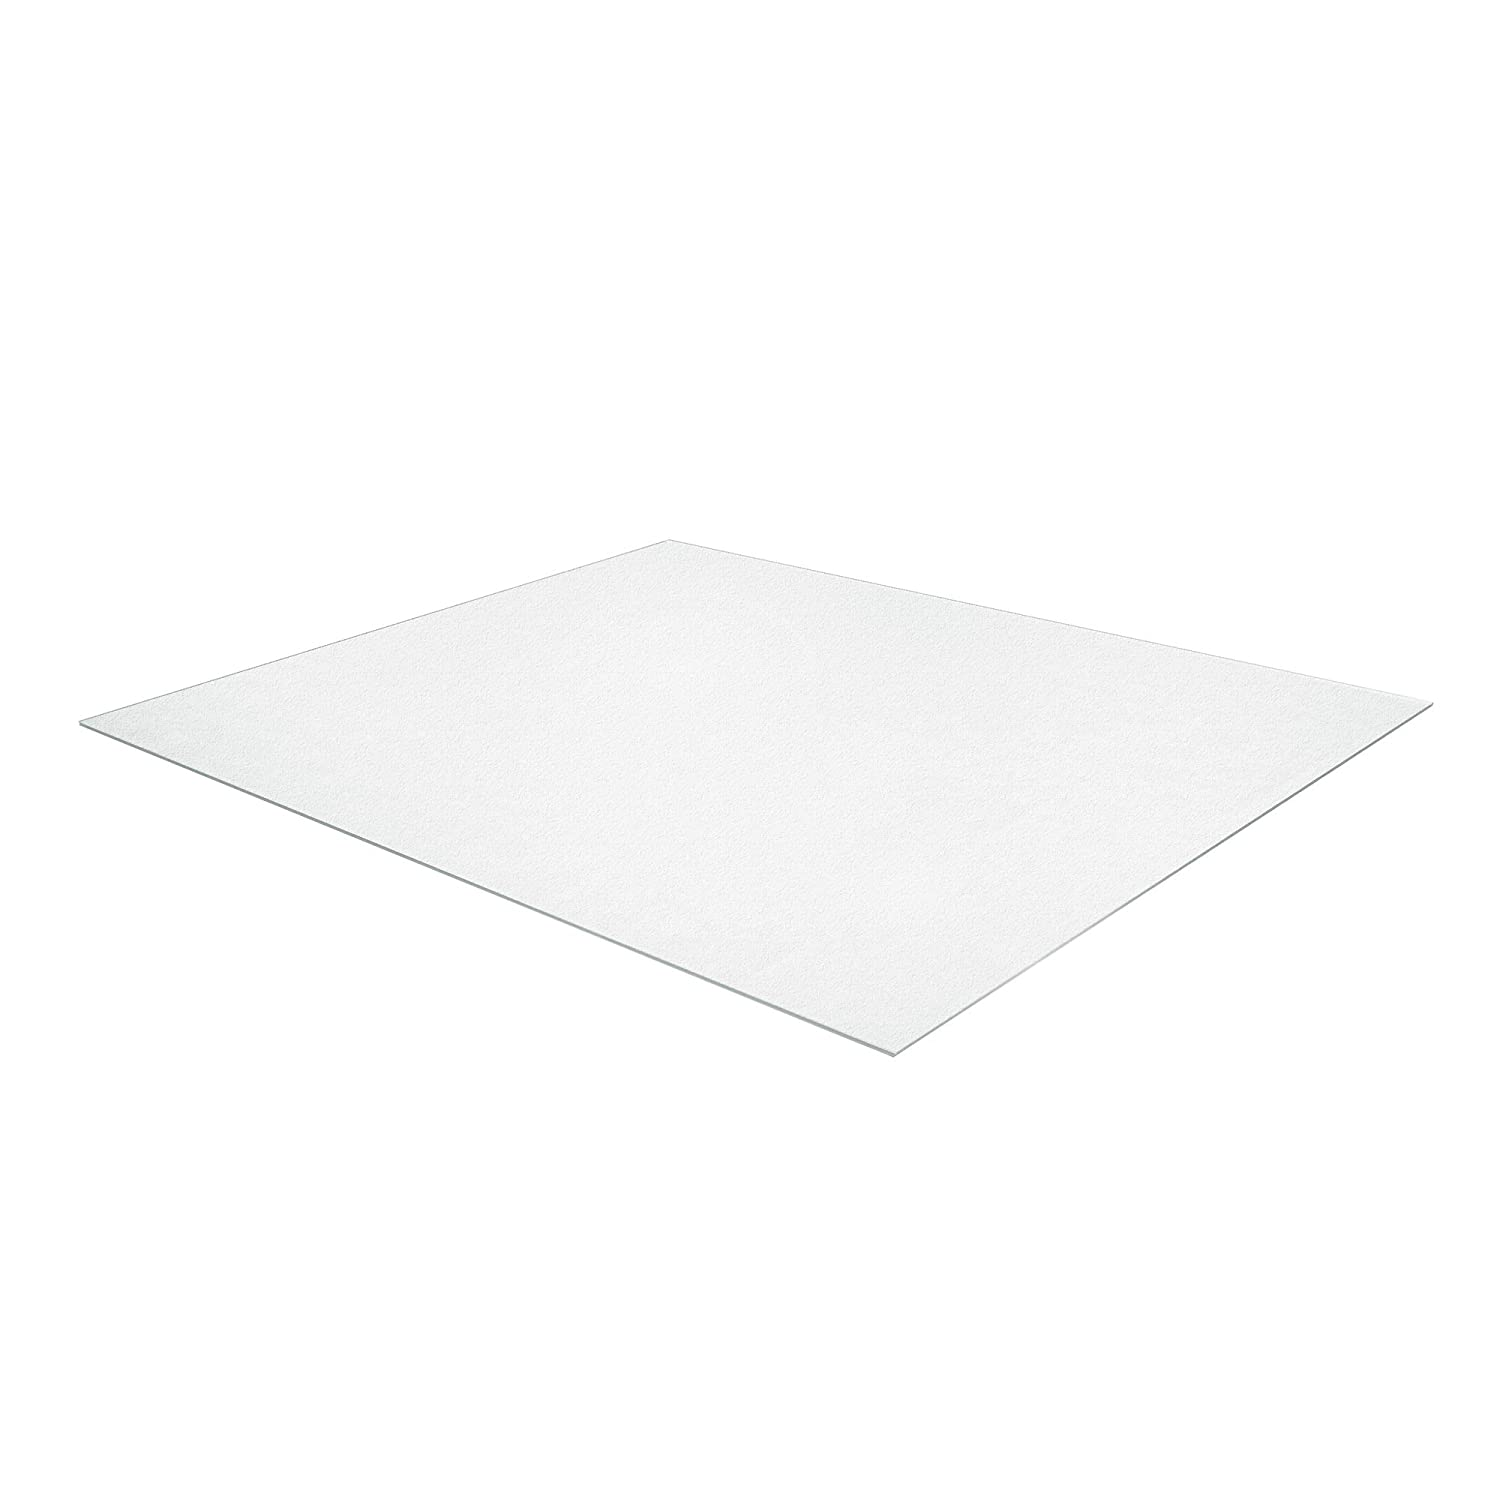 "AmazonBasics Polycarbonate Extra Large Chair Mat for Hard Floors - 59"" x 118"""